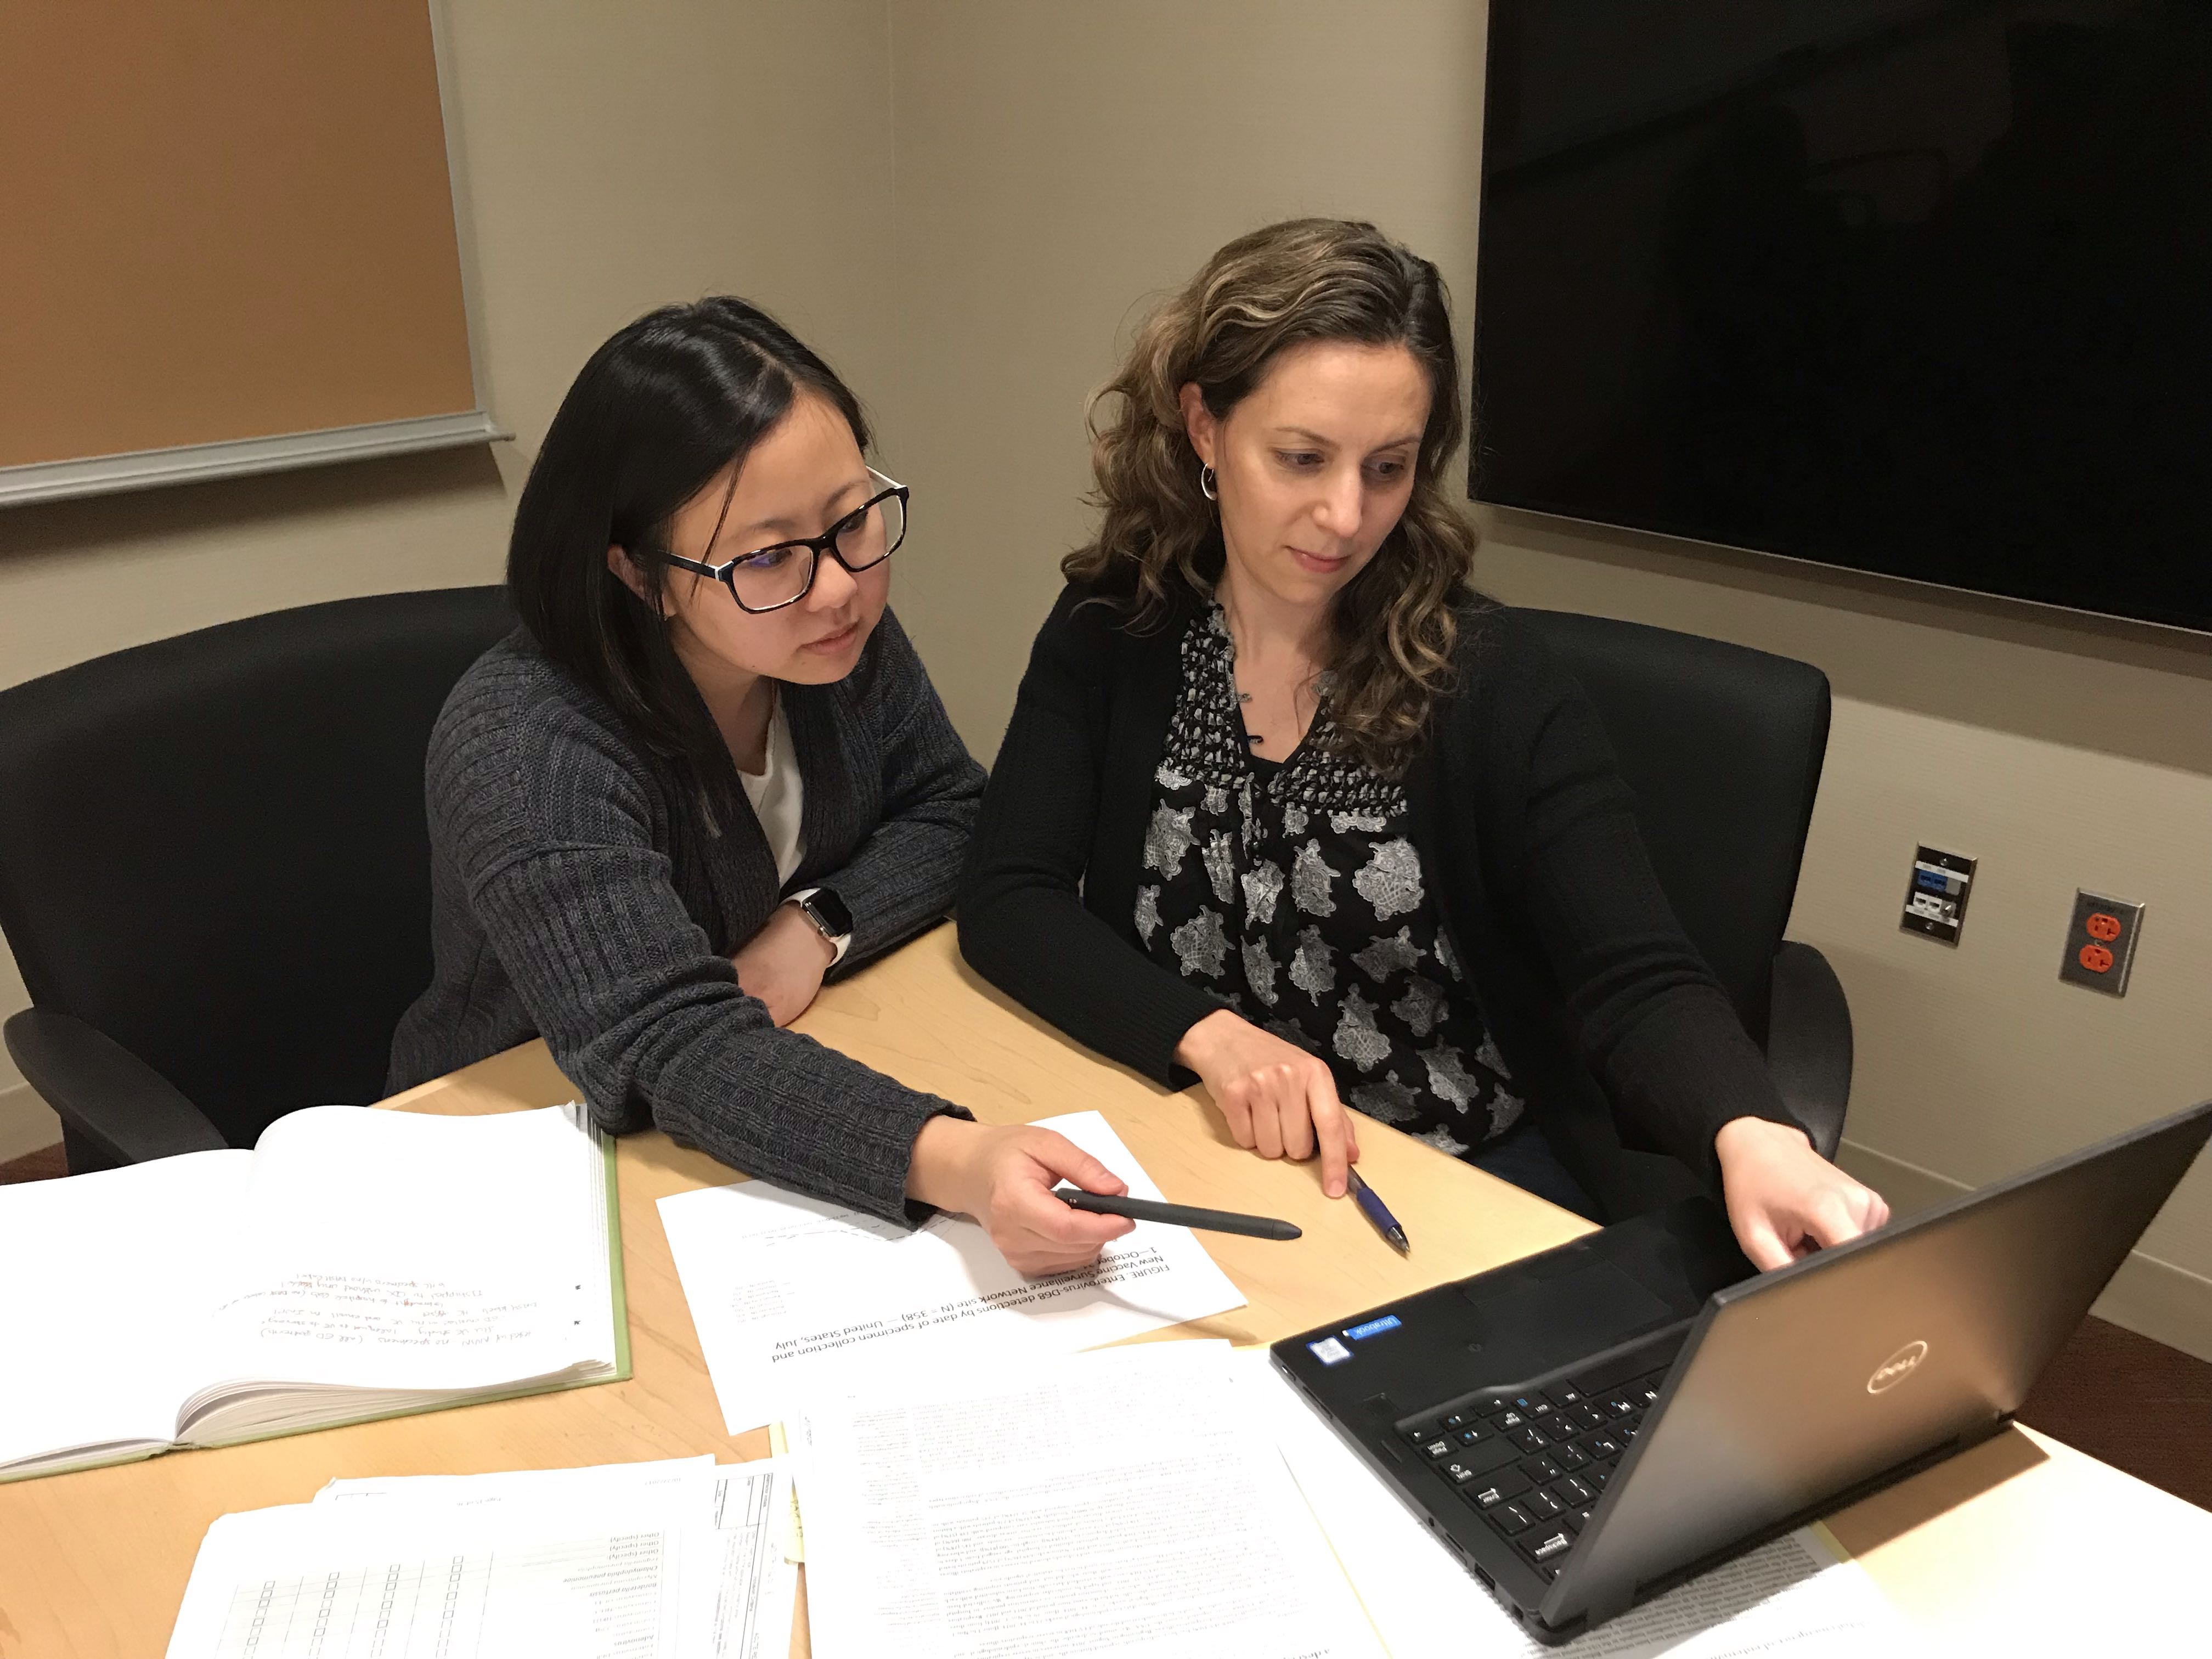 colleagues reviewing data